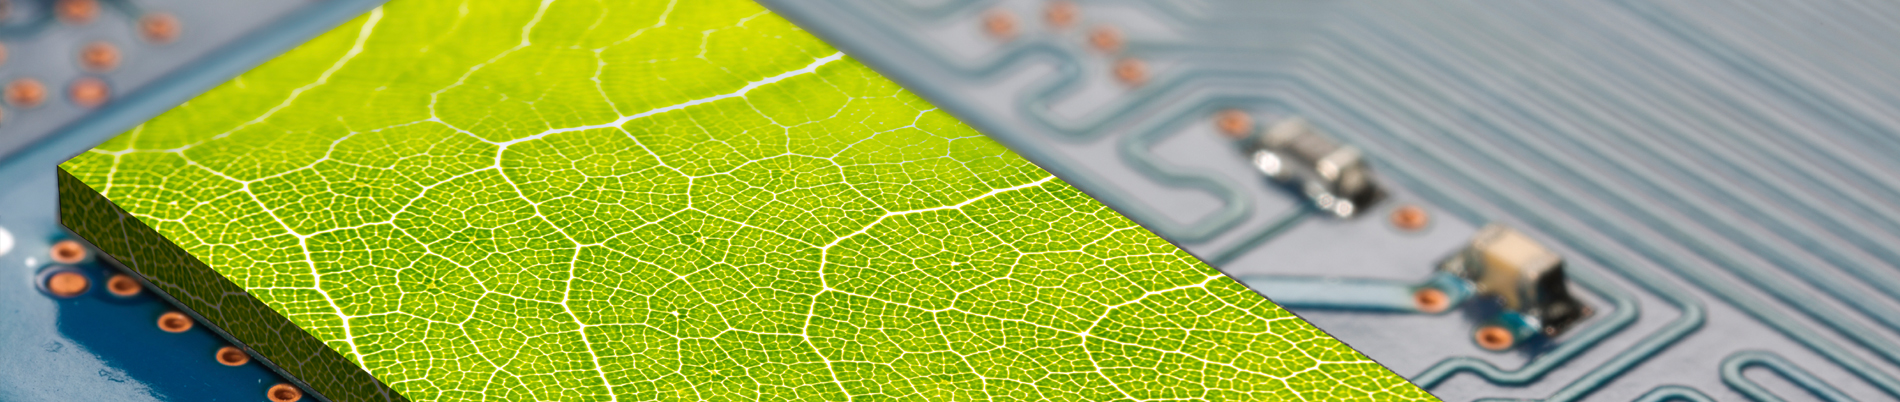 Green leaf embedded in circuit board